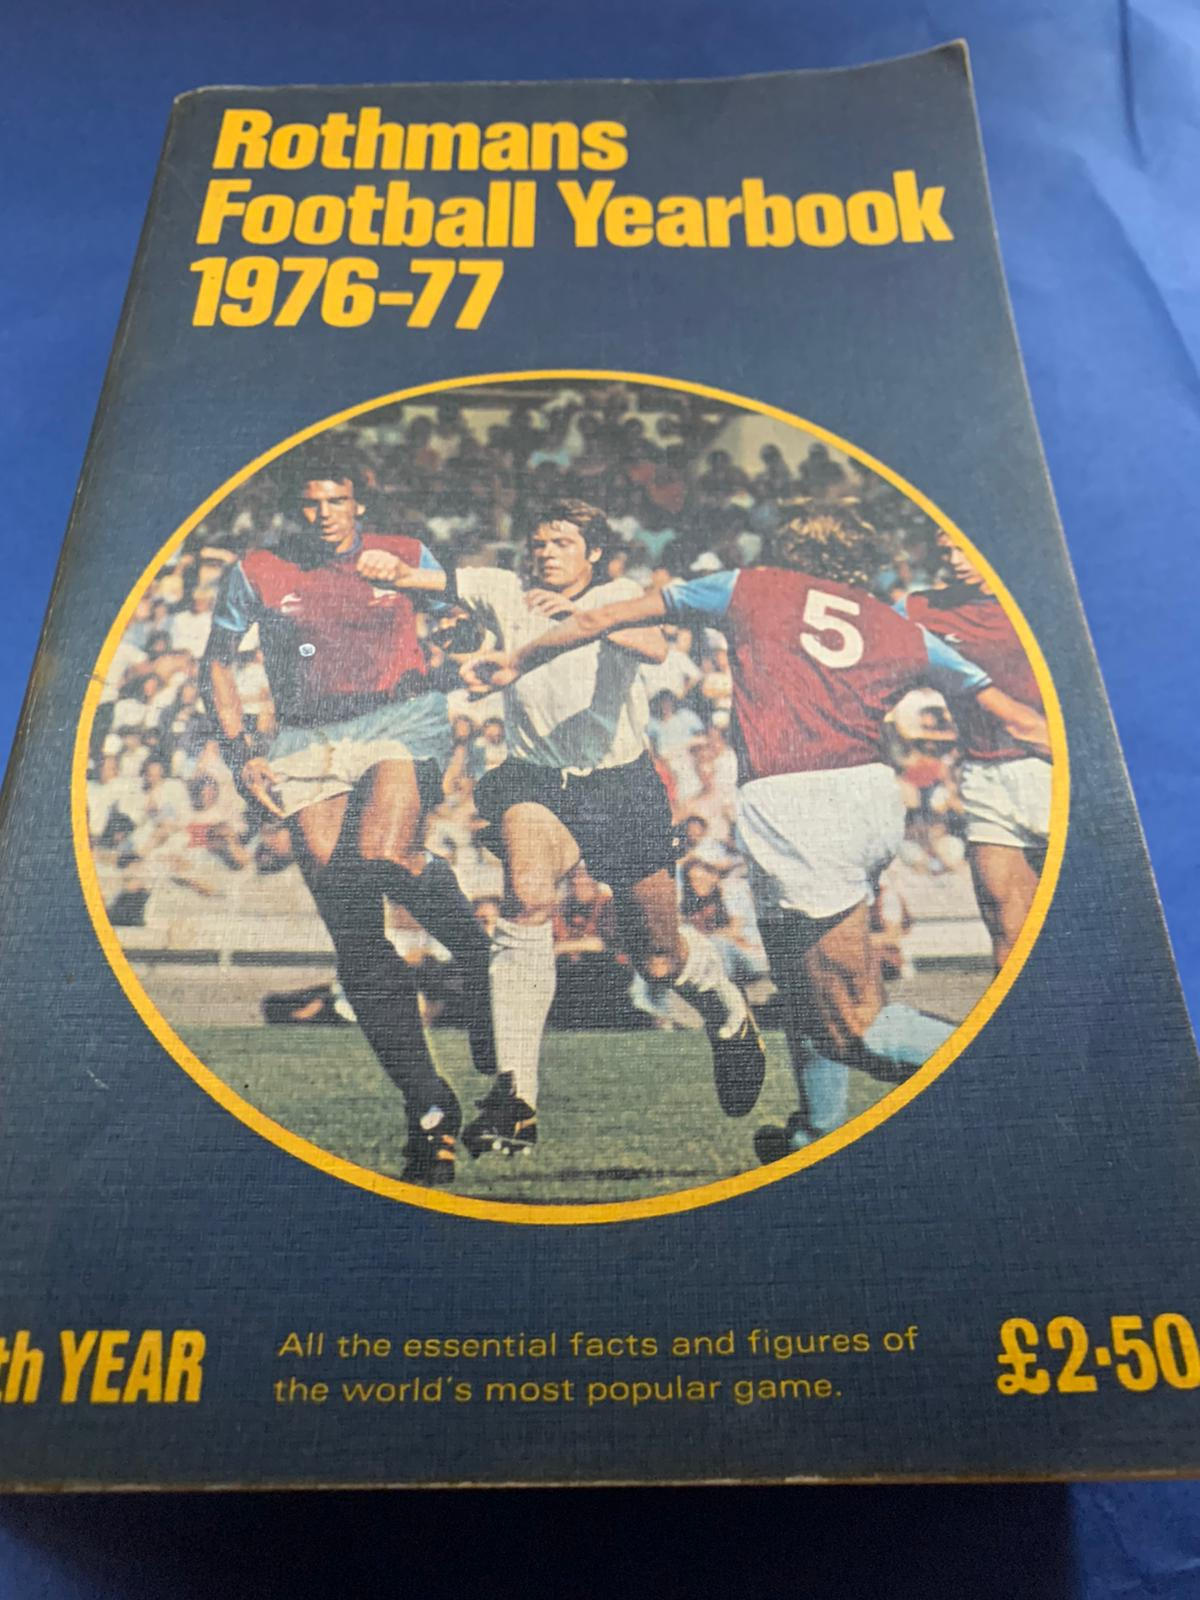 Rothmans Football Yearbook 1976-77